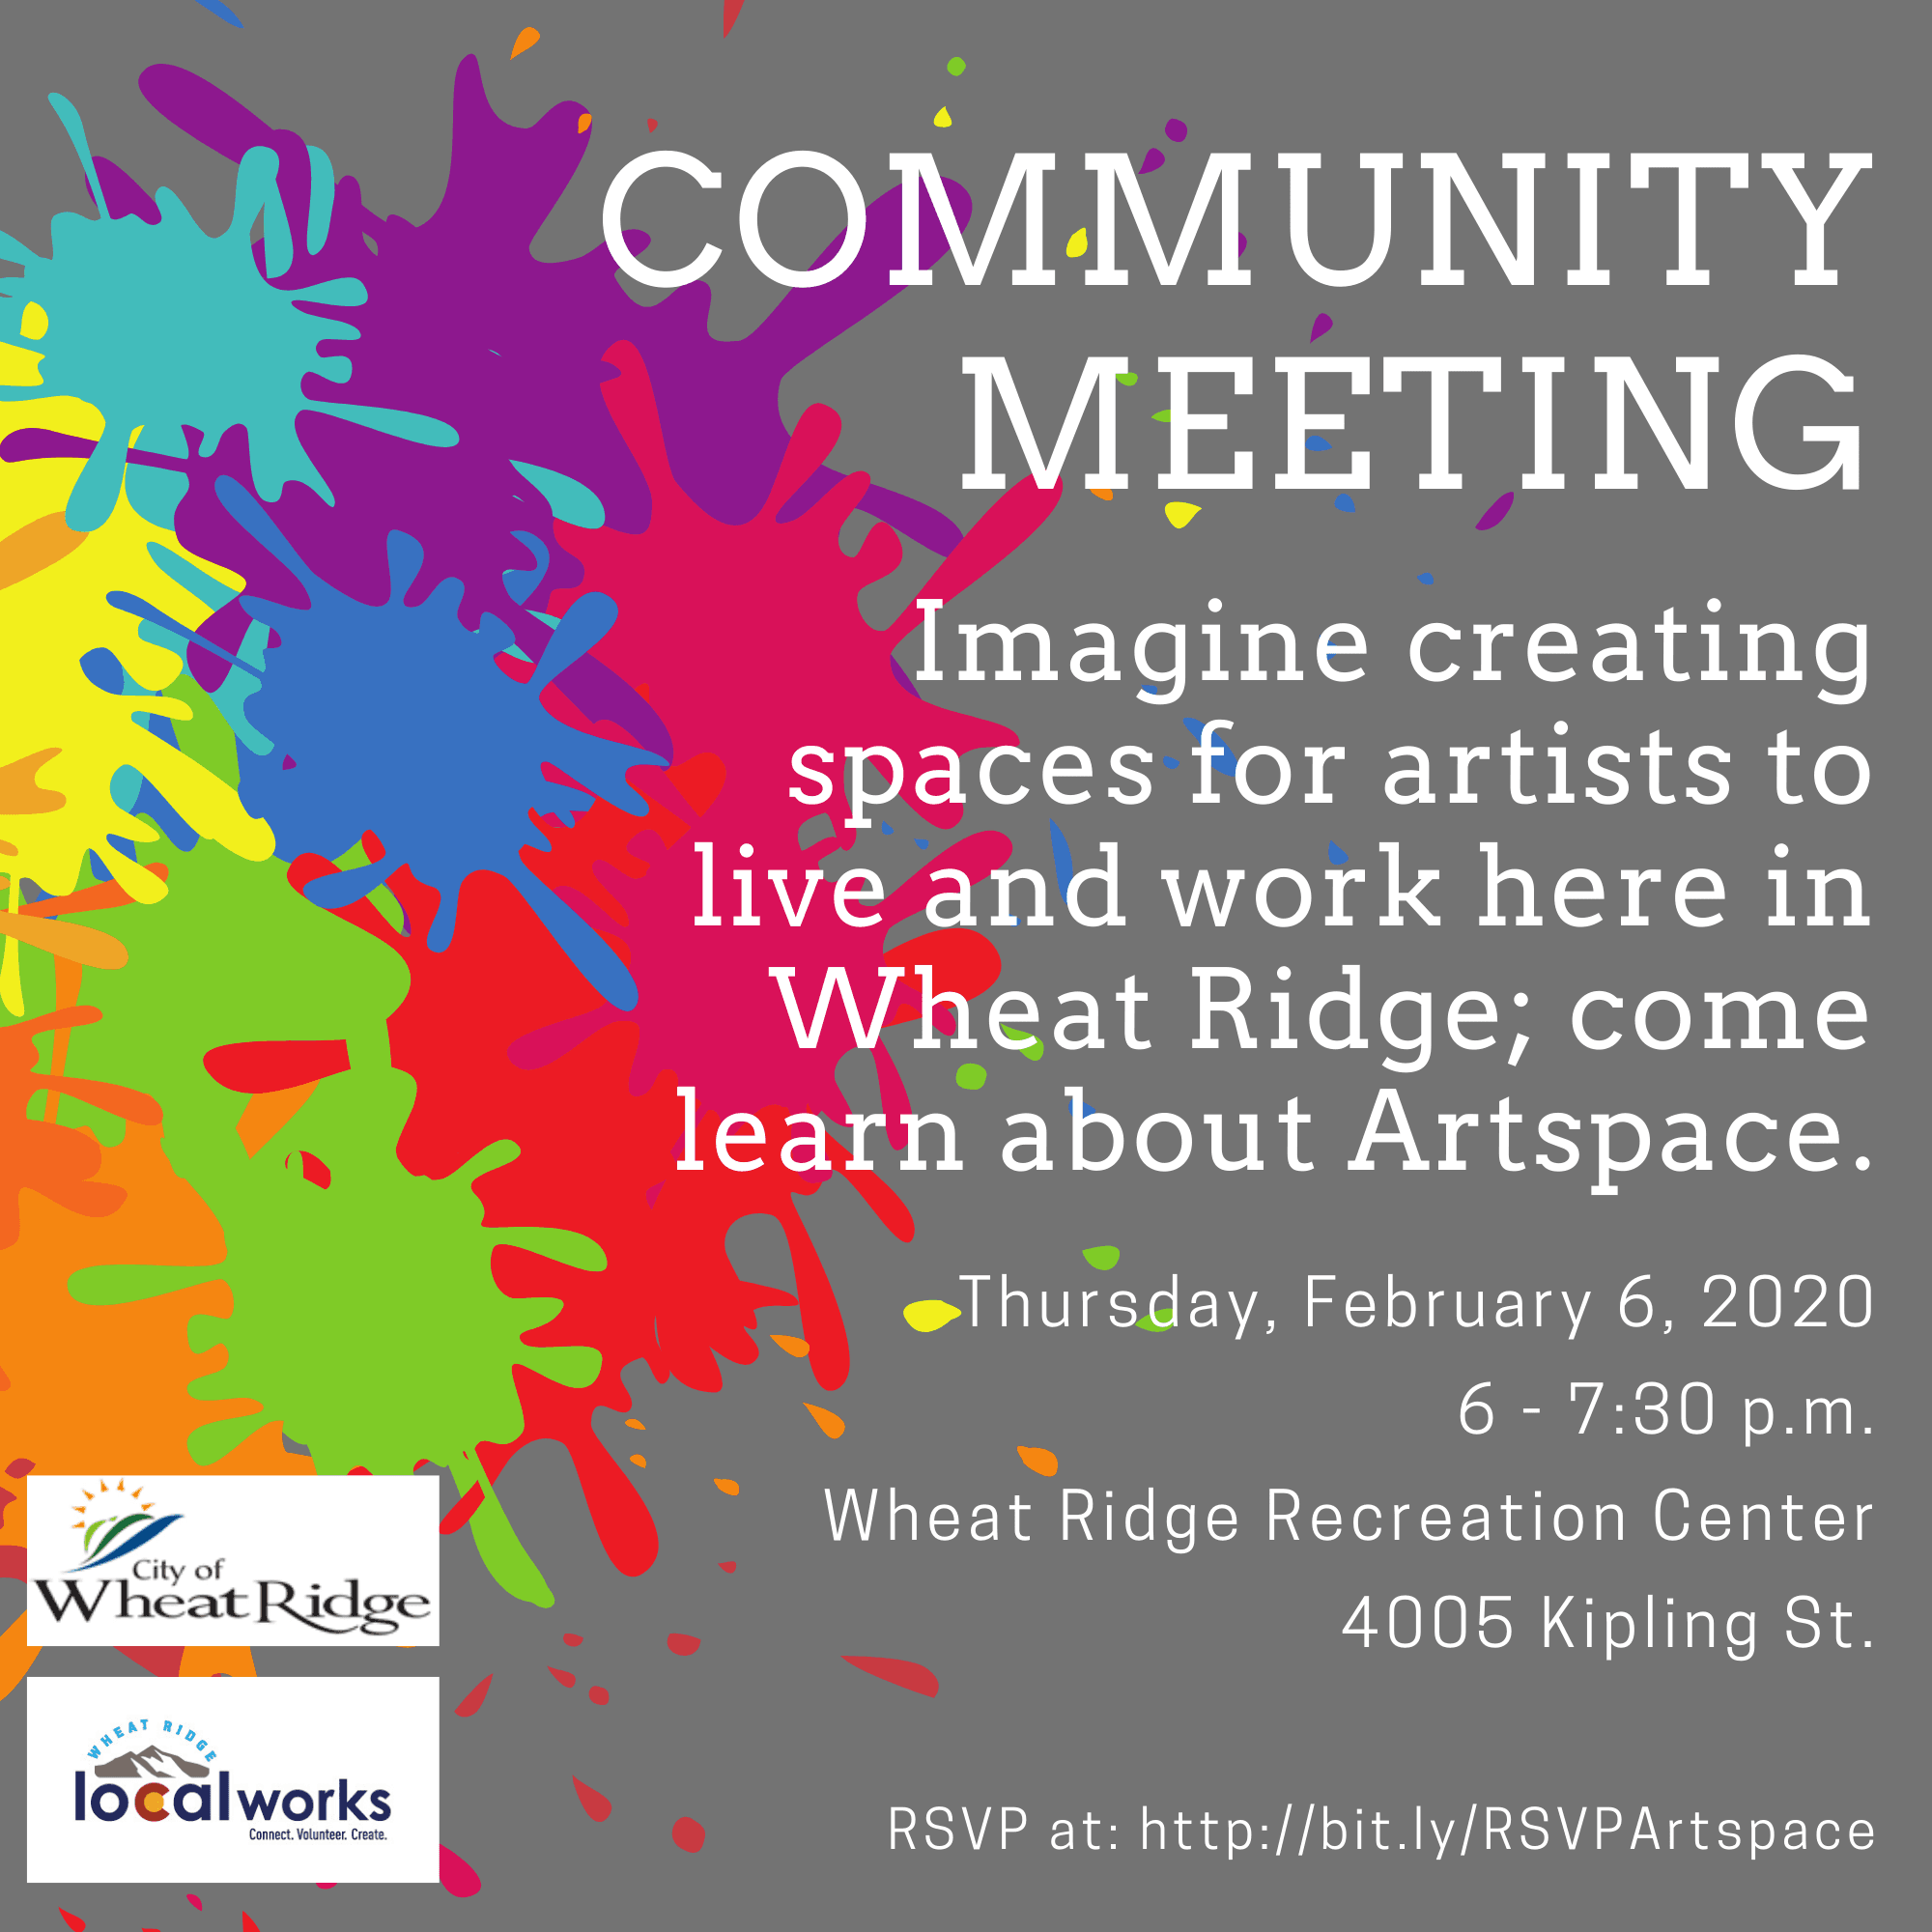 Community Meeting Artspace Information